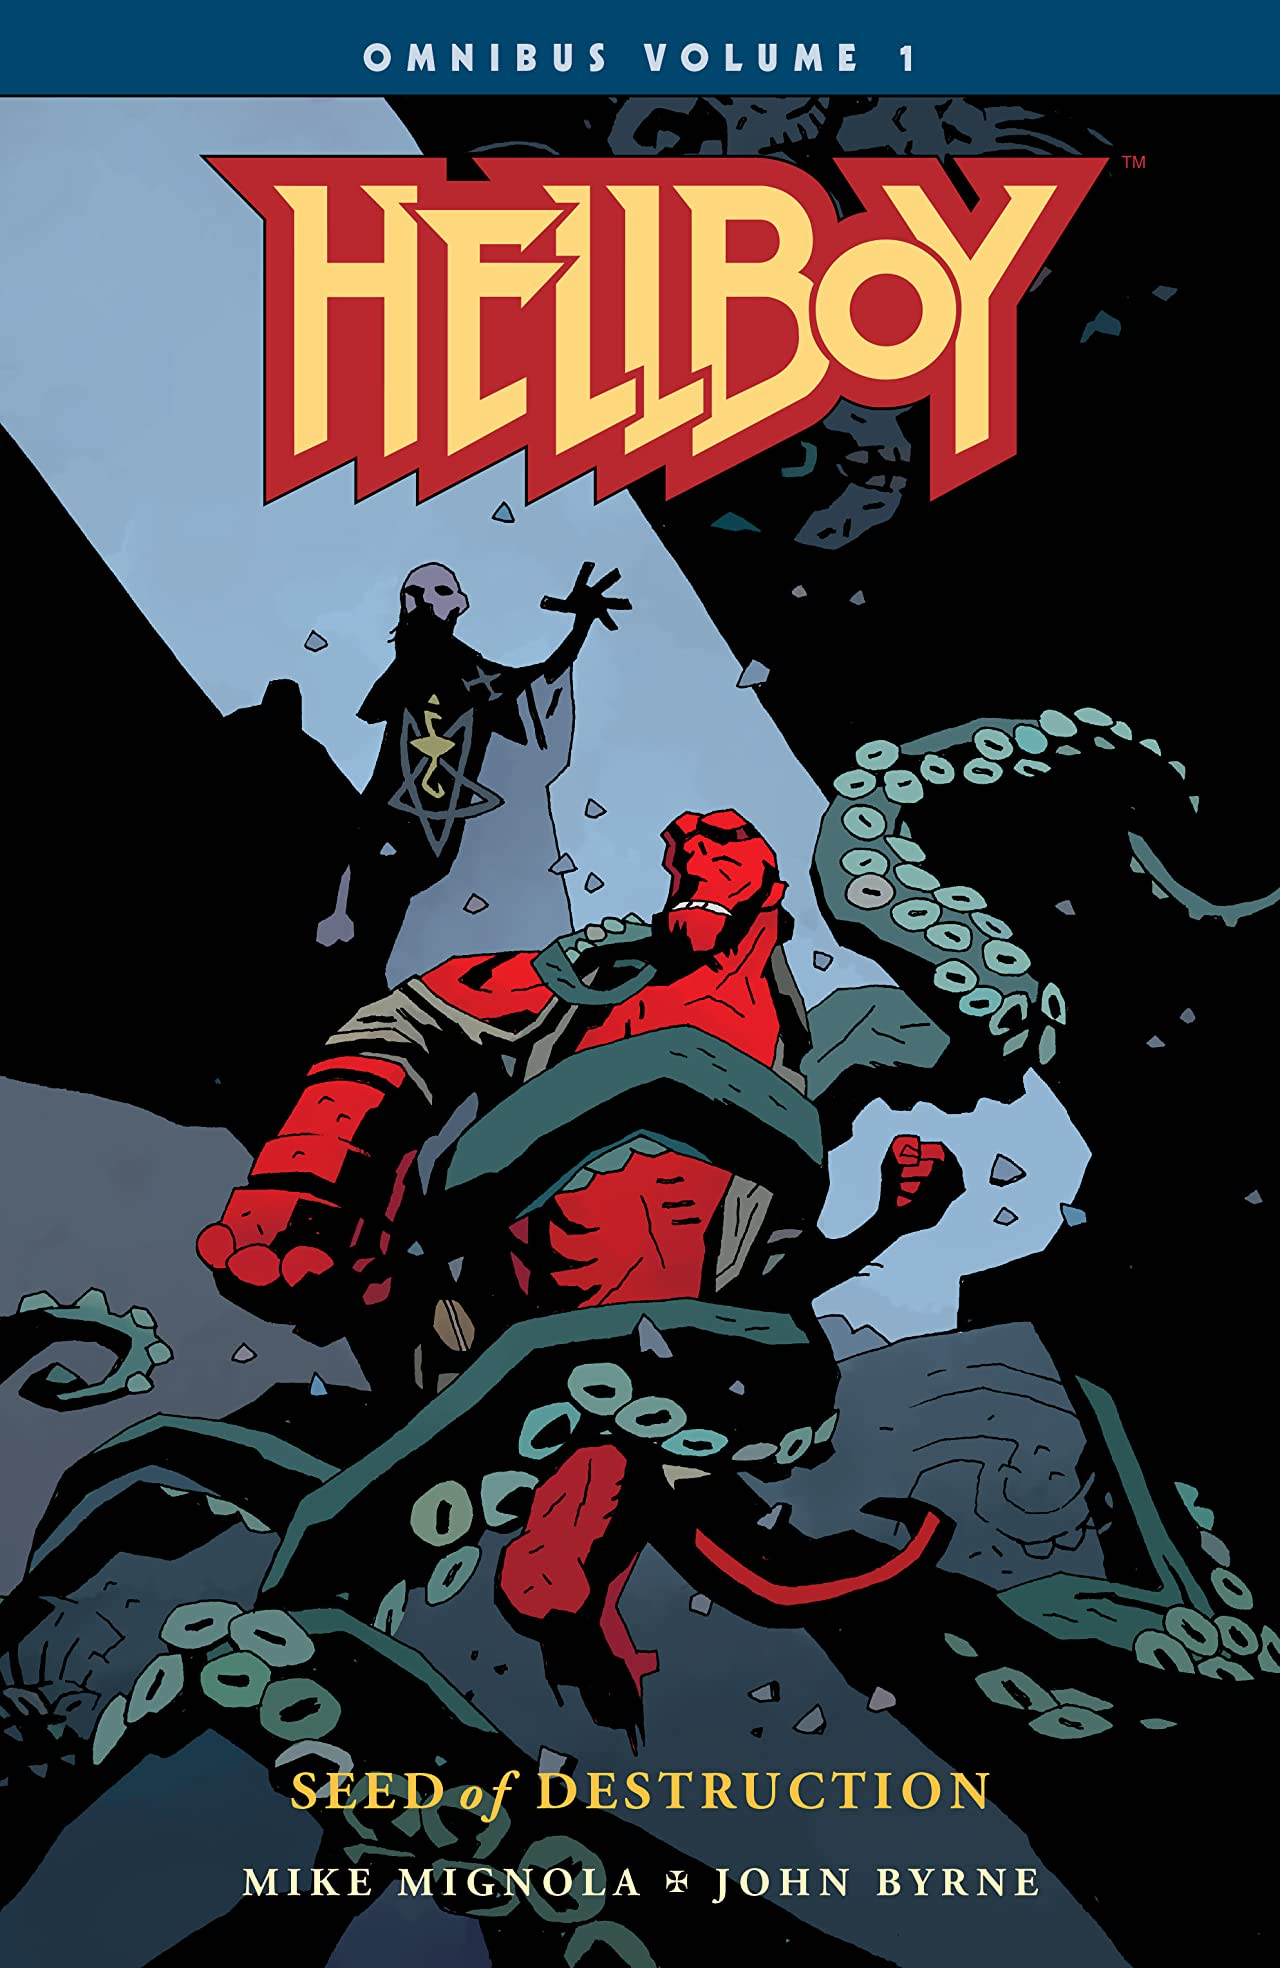 Hellboy Omnibus Vol. 1: Seed of Destruction